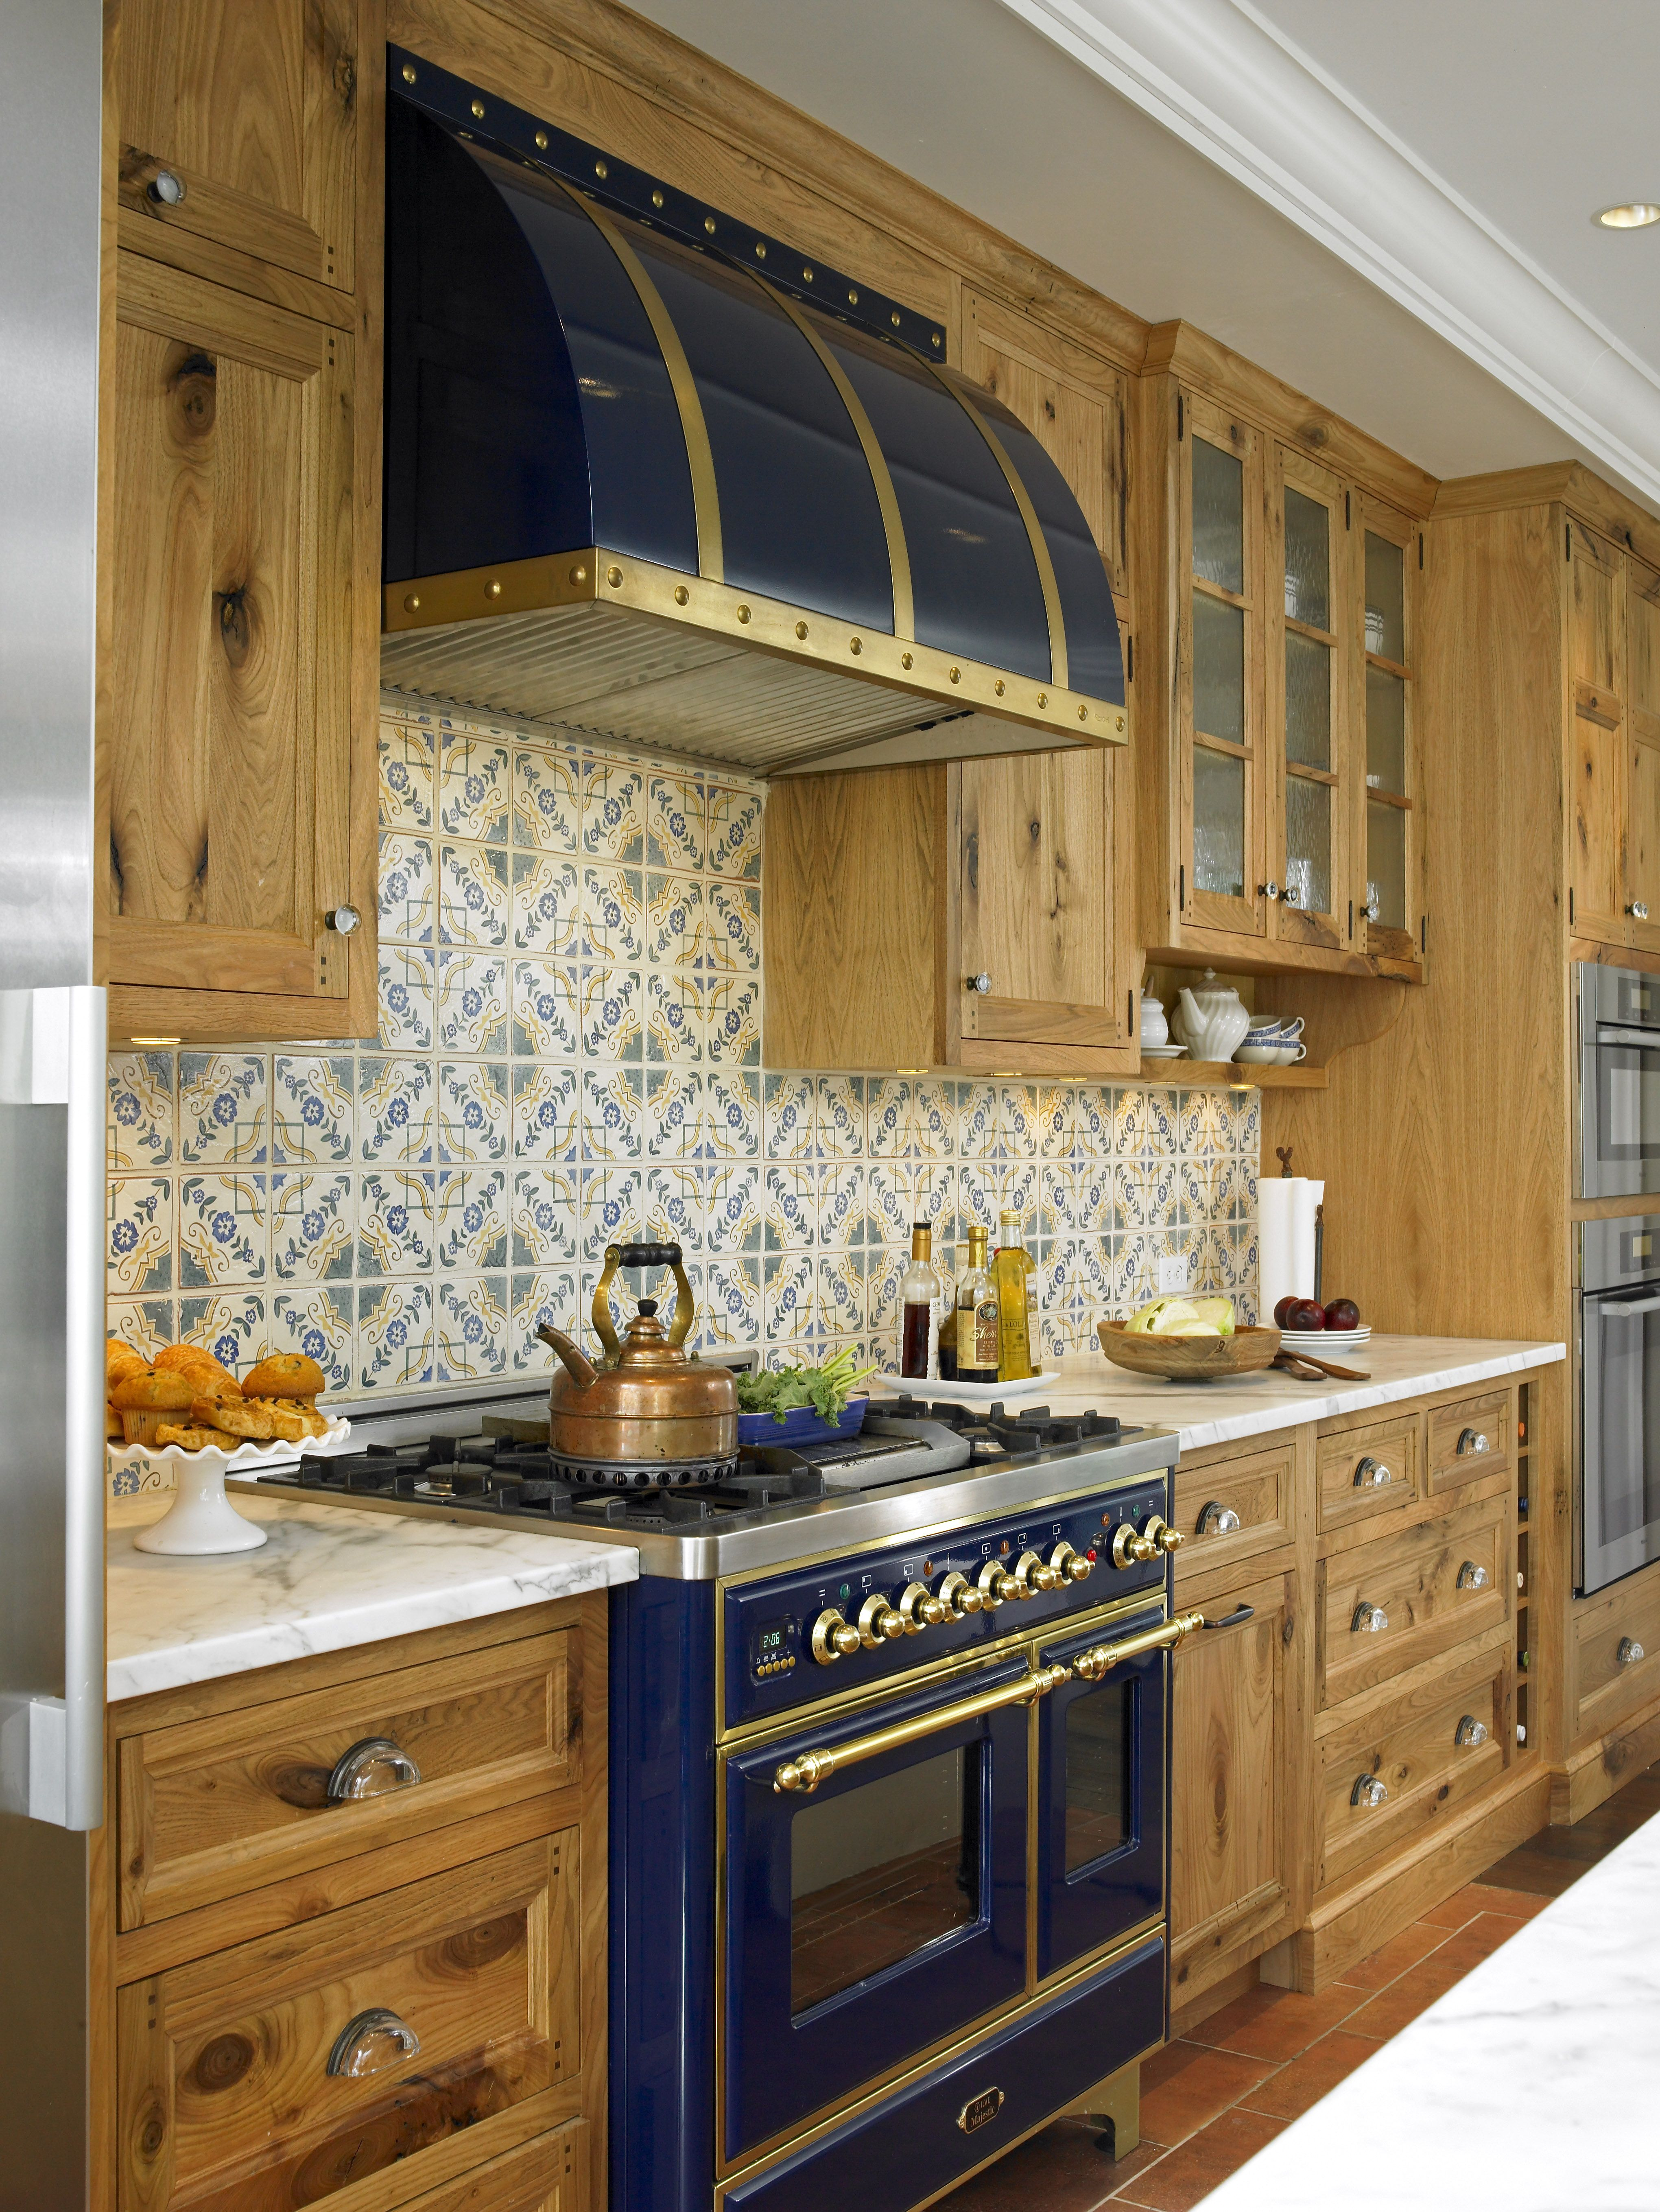 ilve majestic 48 in midnight blue with brass trim kitchen by christine donner photo by nancy on kitchen decor blue id=47026